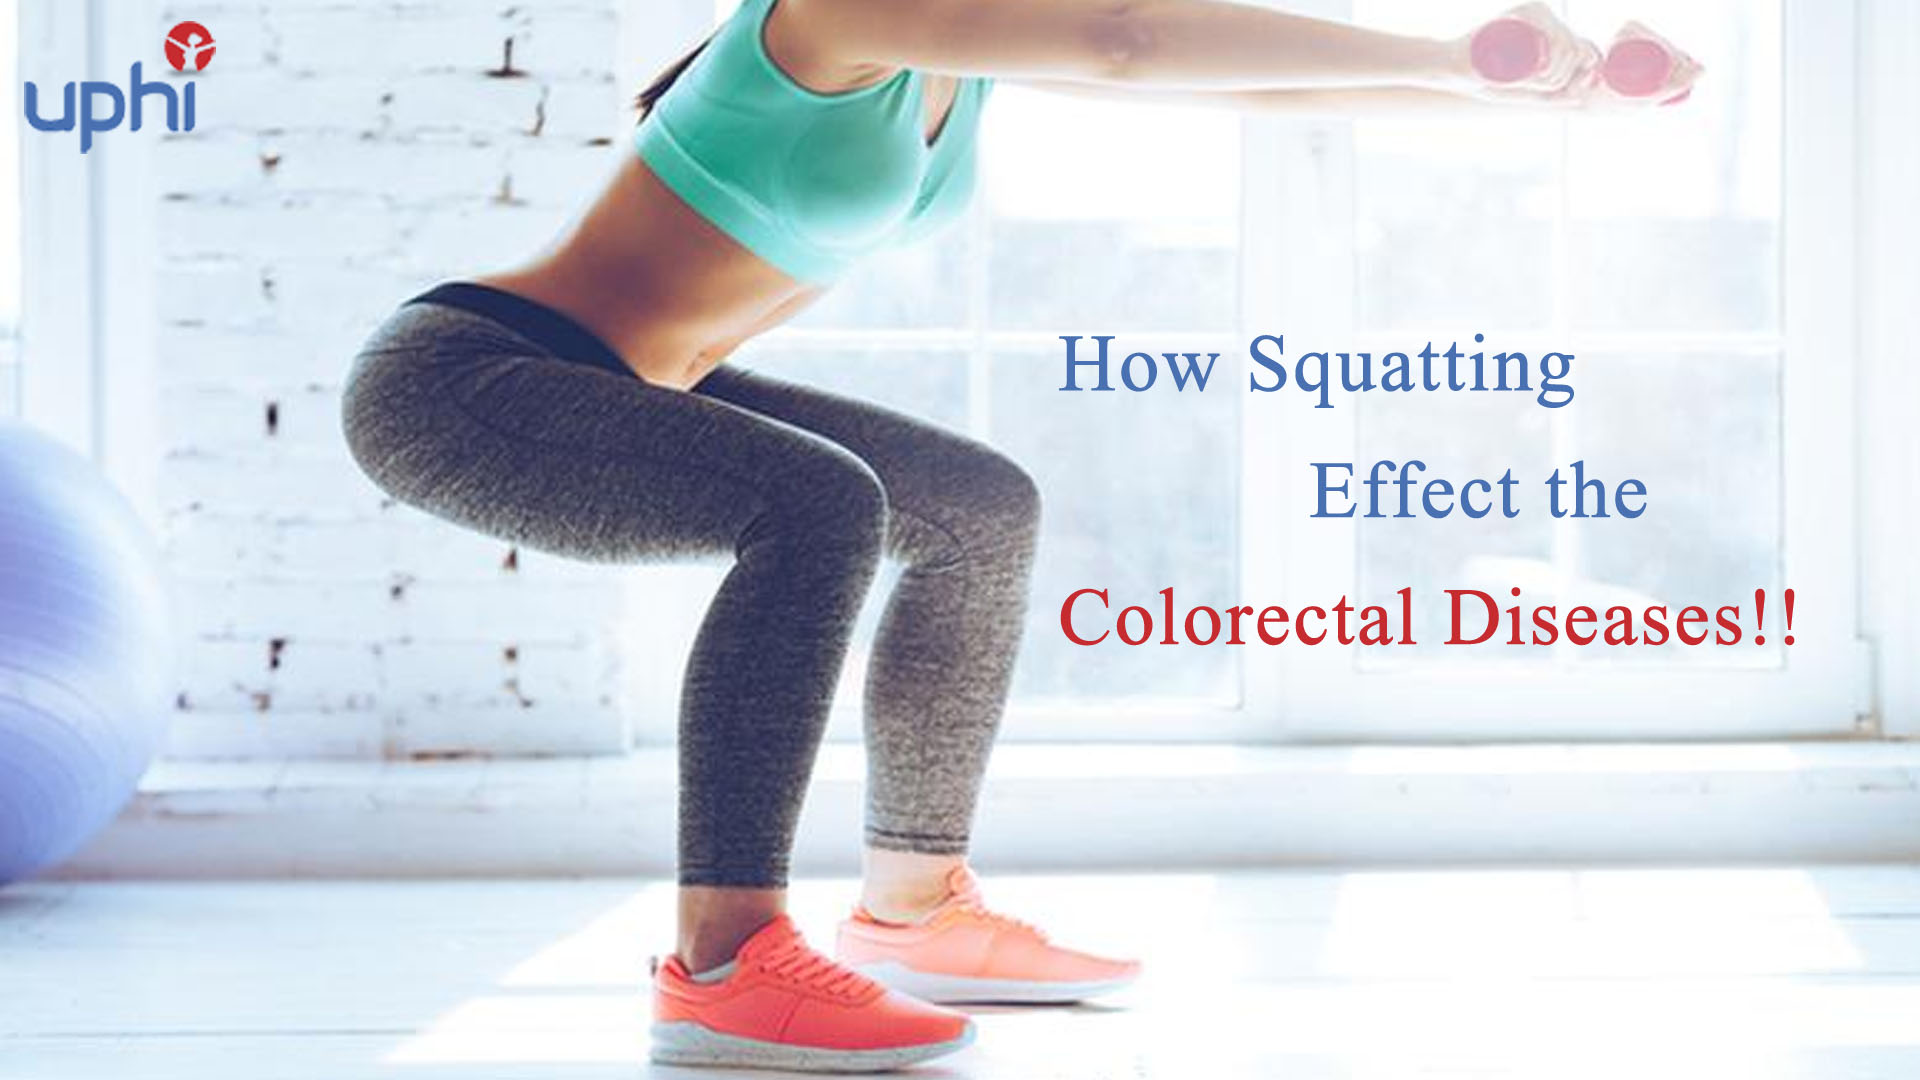 Squatting Effect the Colorectal Diseases